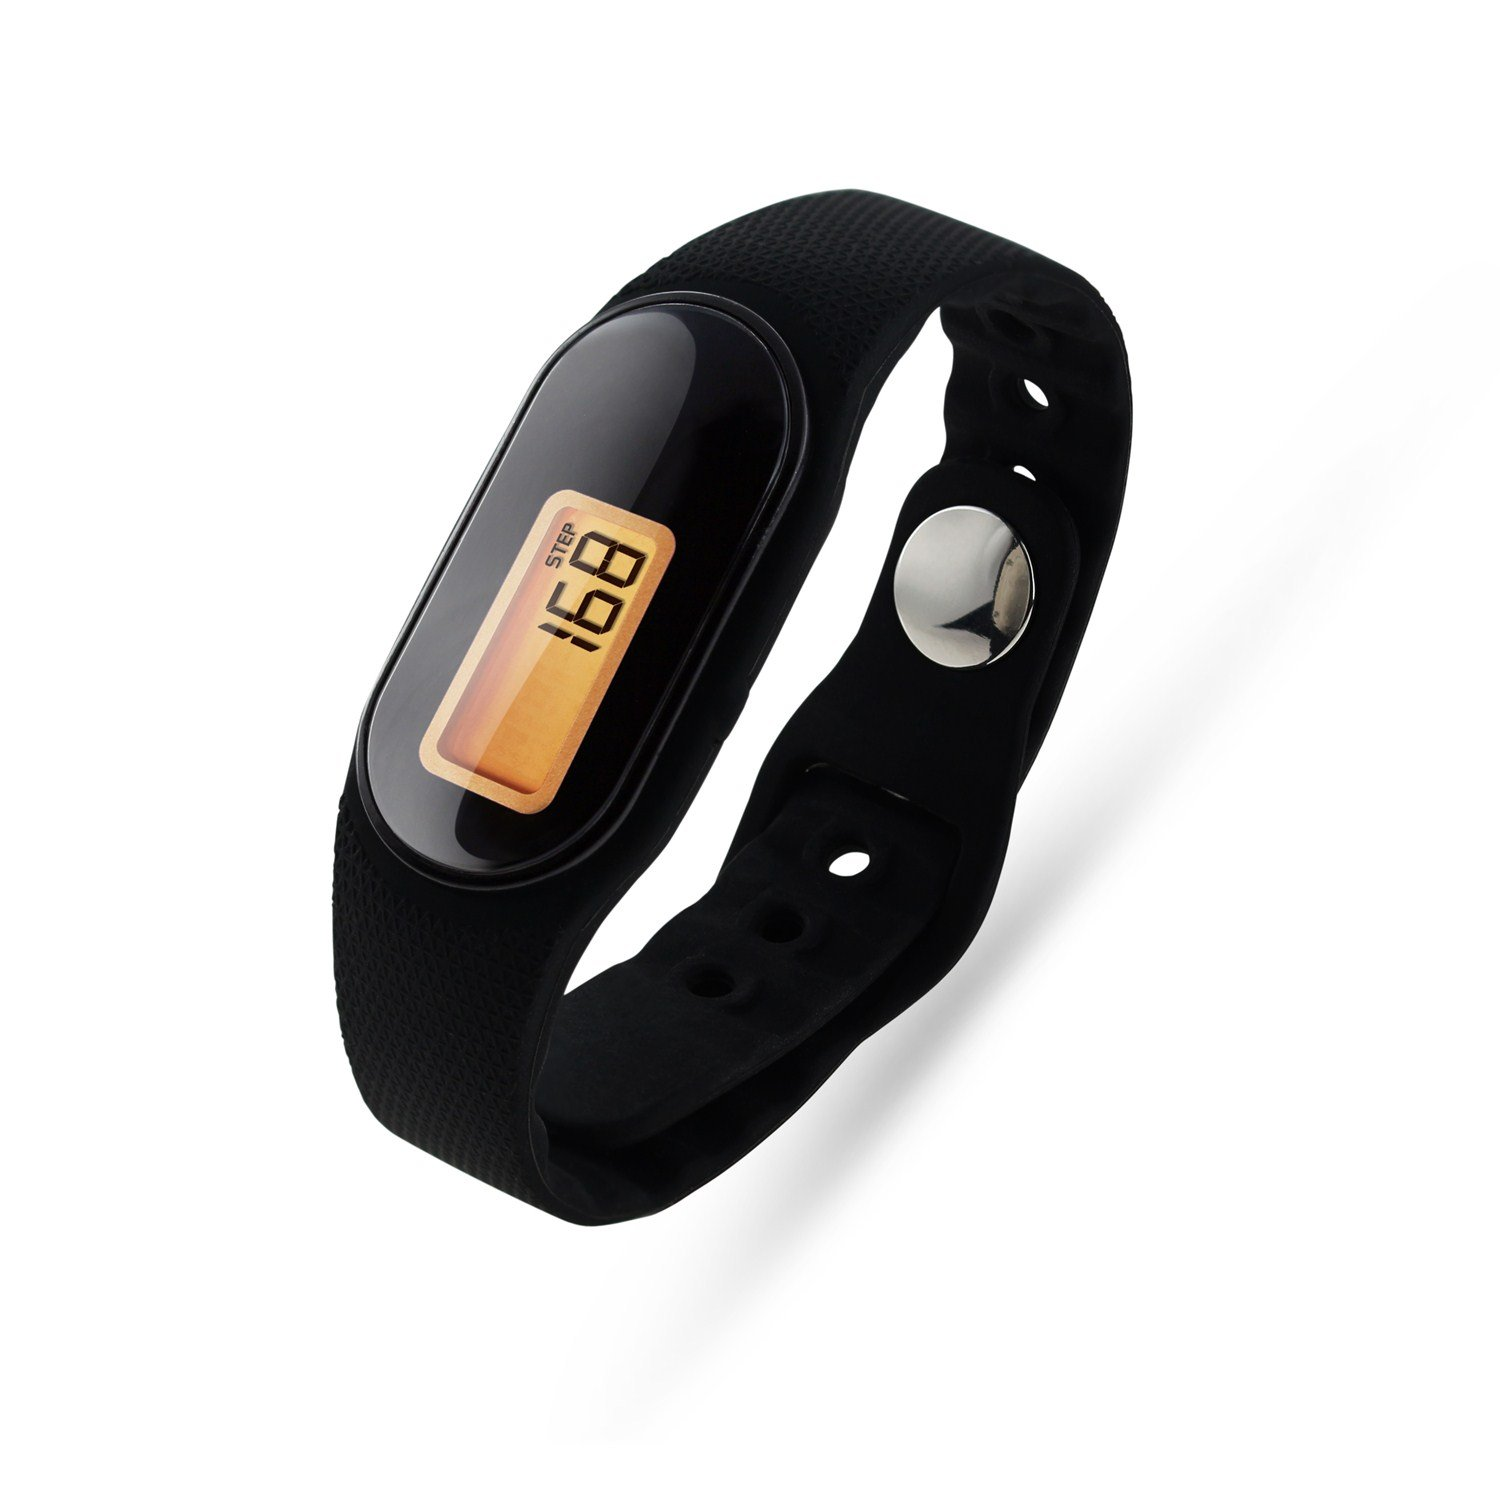 U-Trak 3D Pedometer Sport Wristband IP67 Waterproof Fitness Tracker with Accurately Track Steps/Distance /Calories,Exercise Time,Clock (No App,No Phone need) for Walking Running (Black)